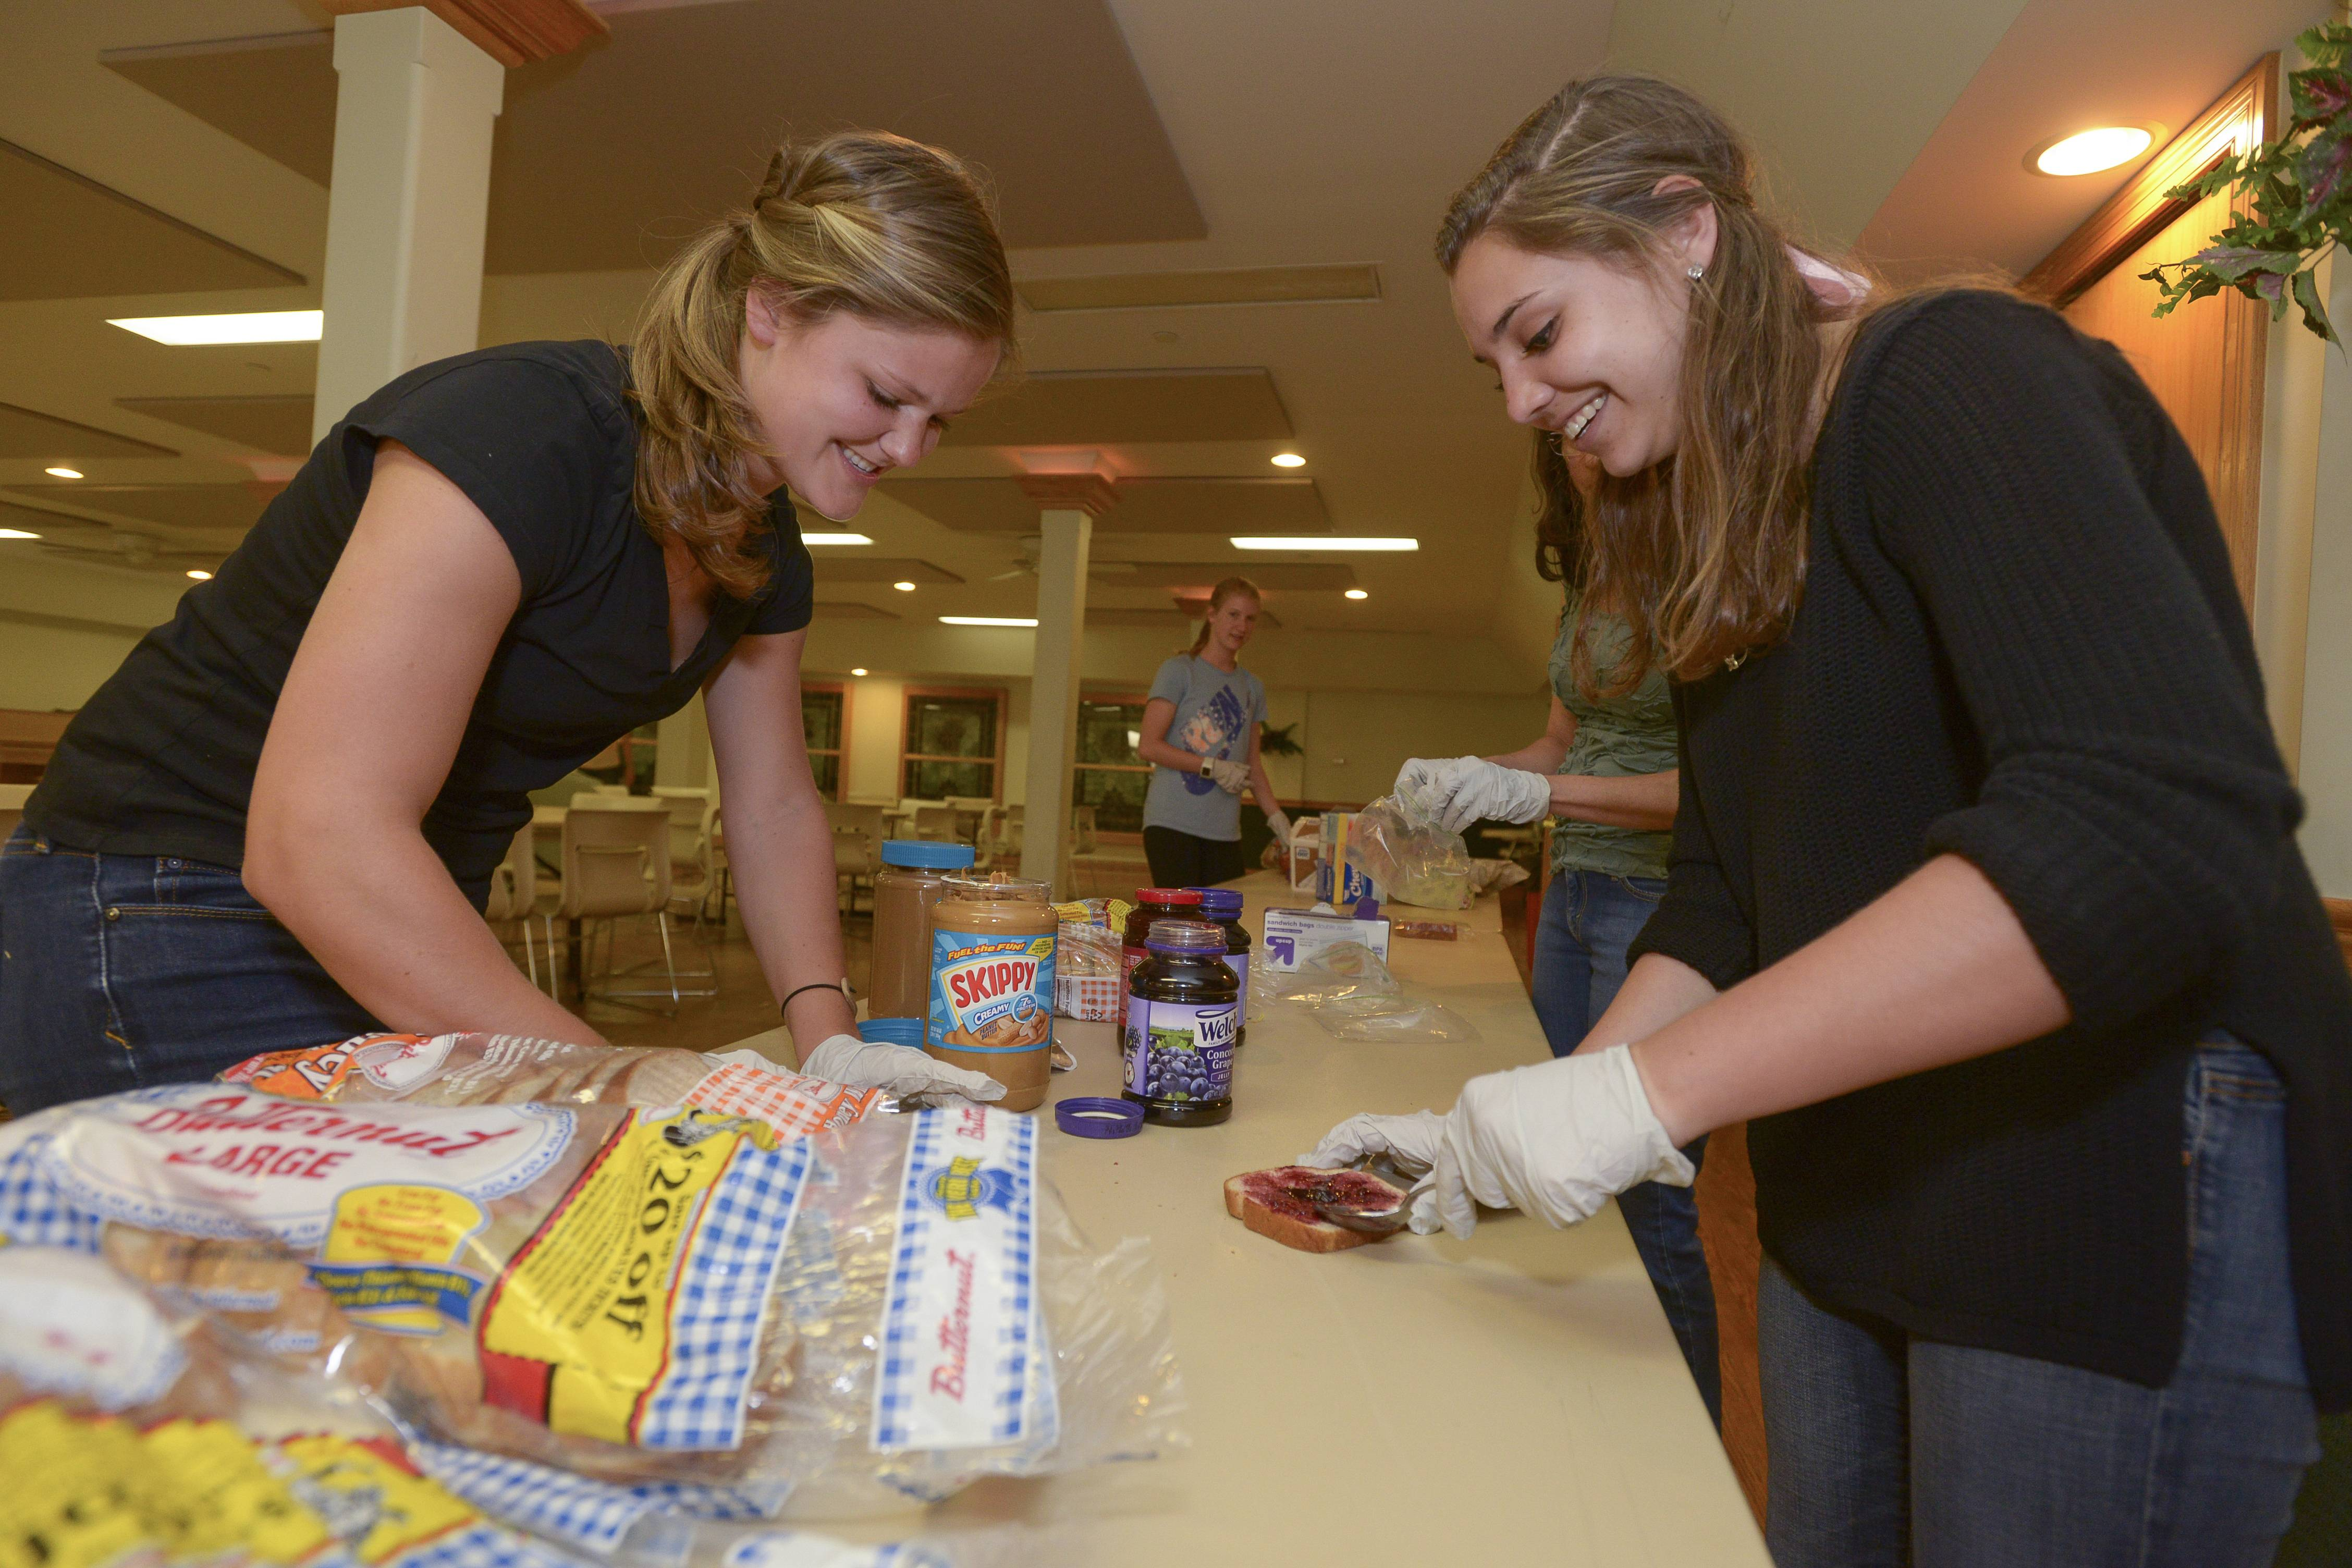 Members of the Daily Herald Leadership Team members Katie Mann, 18, of Wheaton Academy and Meg Maloney, 18, of Glenbard West High School make lunch sandwiches while volunteering Sunday at the Community United Methodist Church's PADS shelter in Naperville.